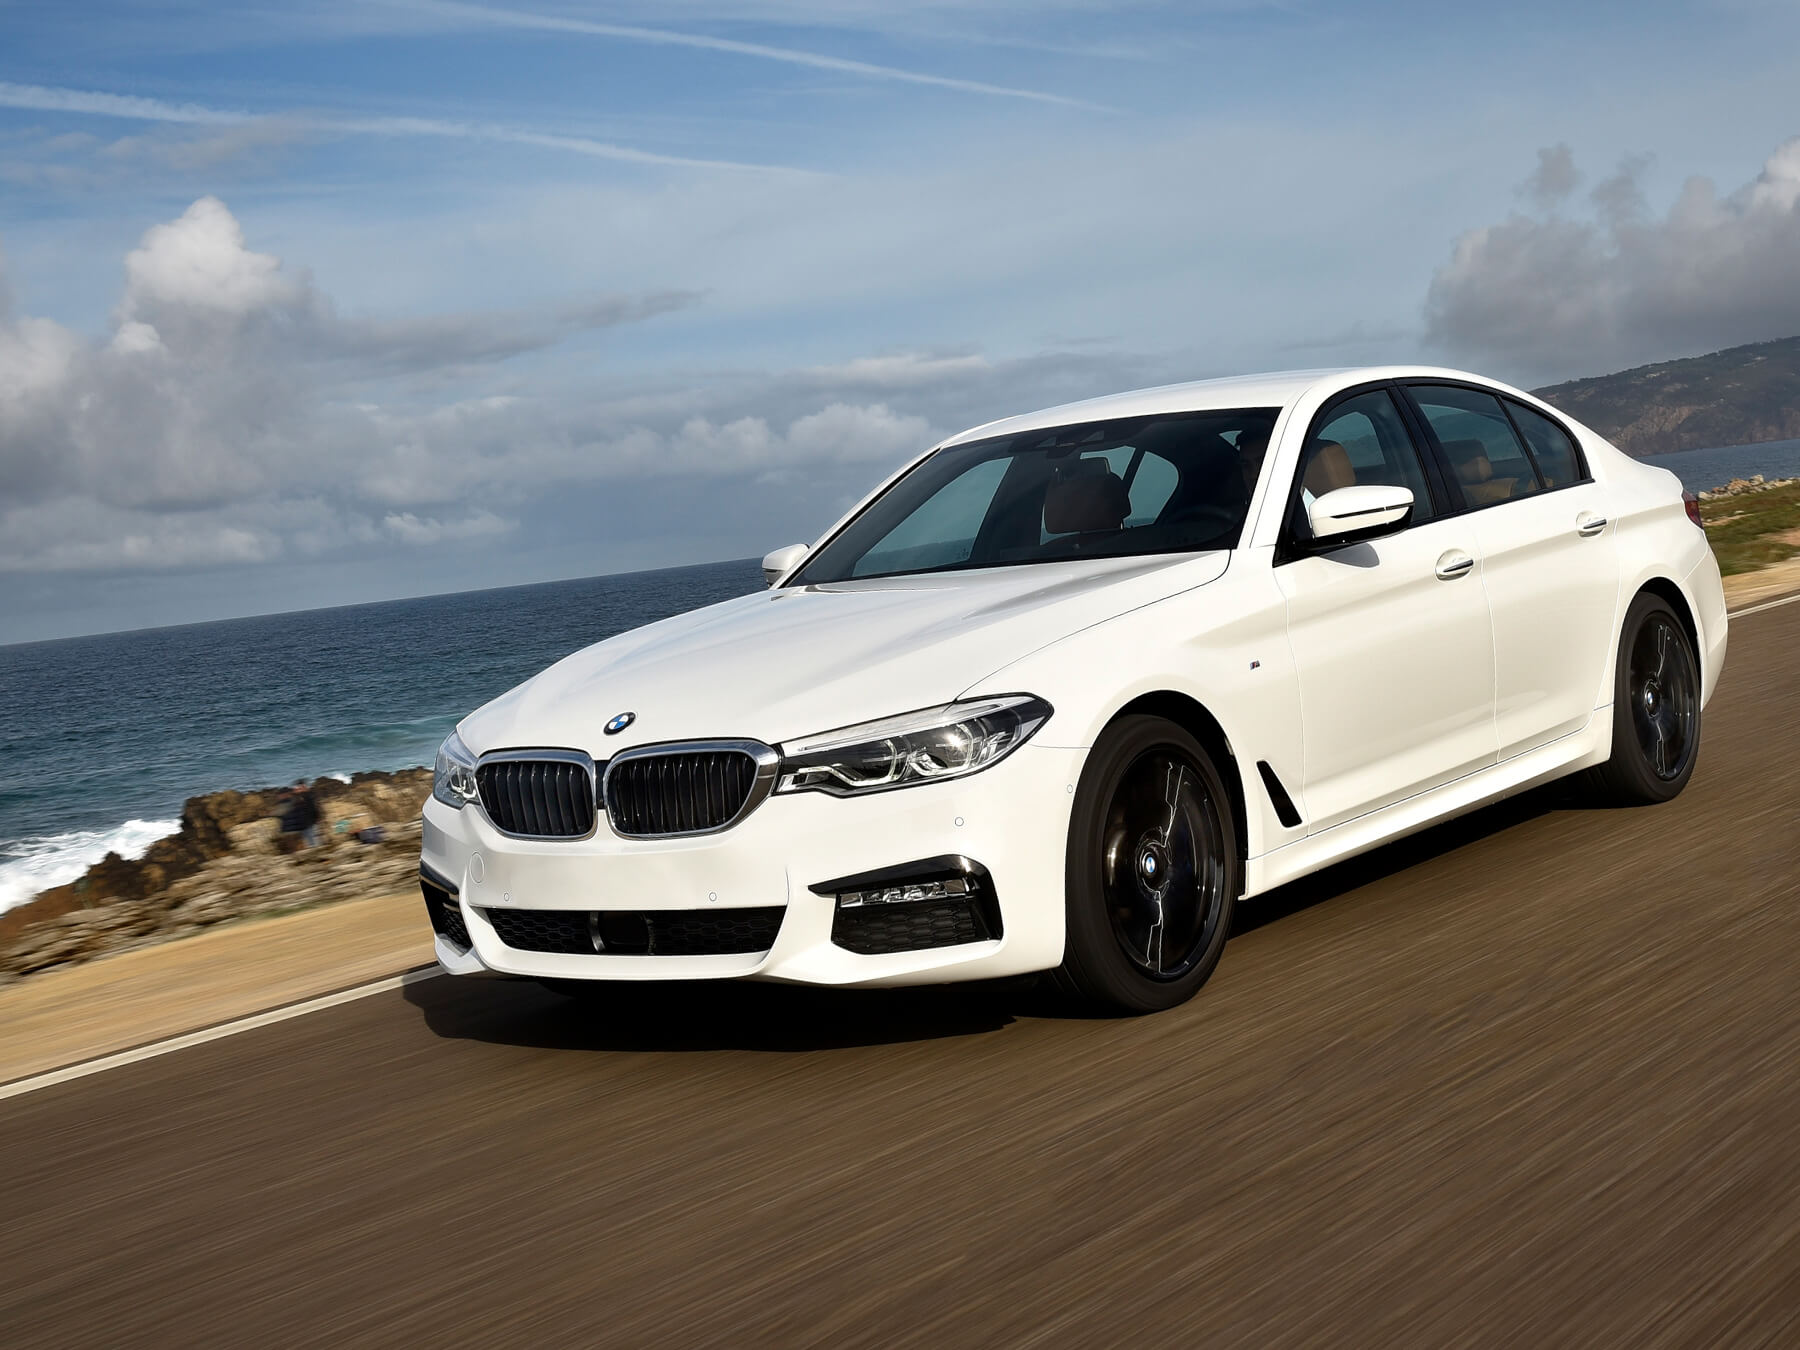 Action shot of a white BMW driving along the oceanside